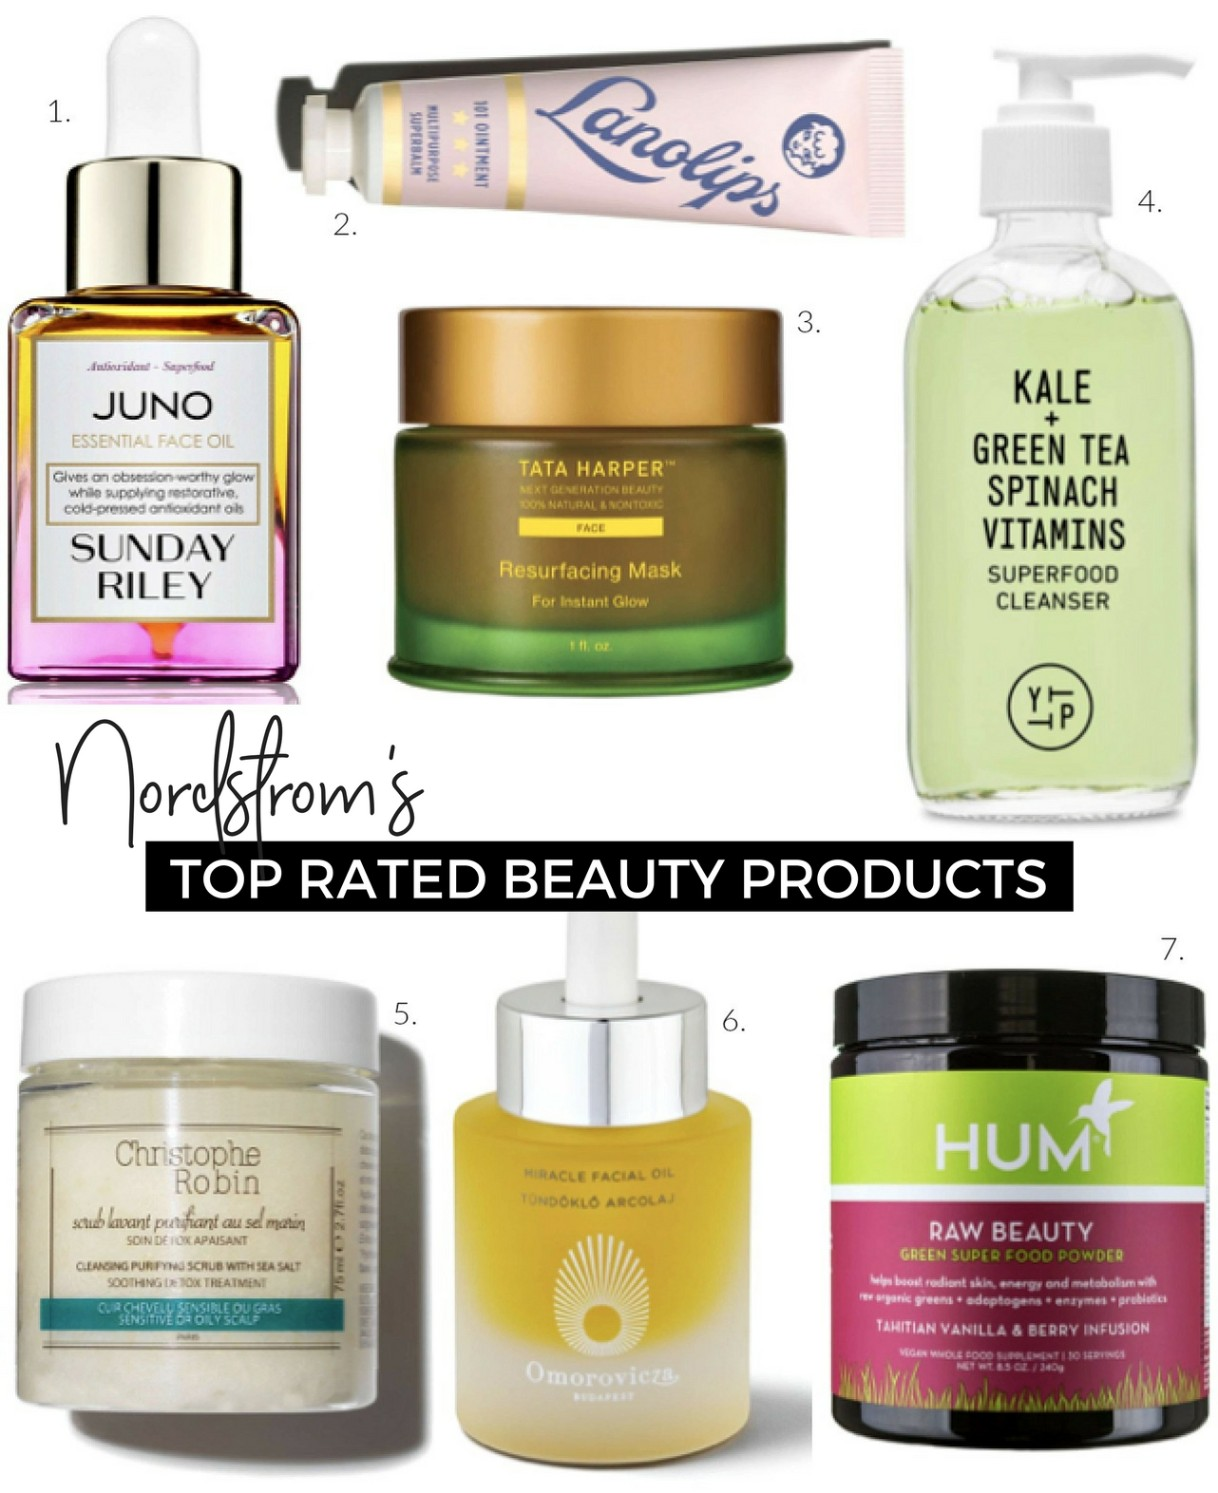 Nordtrom's Top Rated Beauty products five star reviews beauty blogger top picks